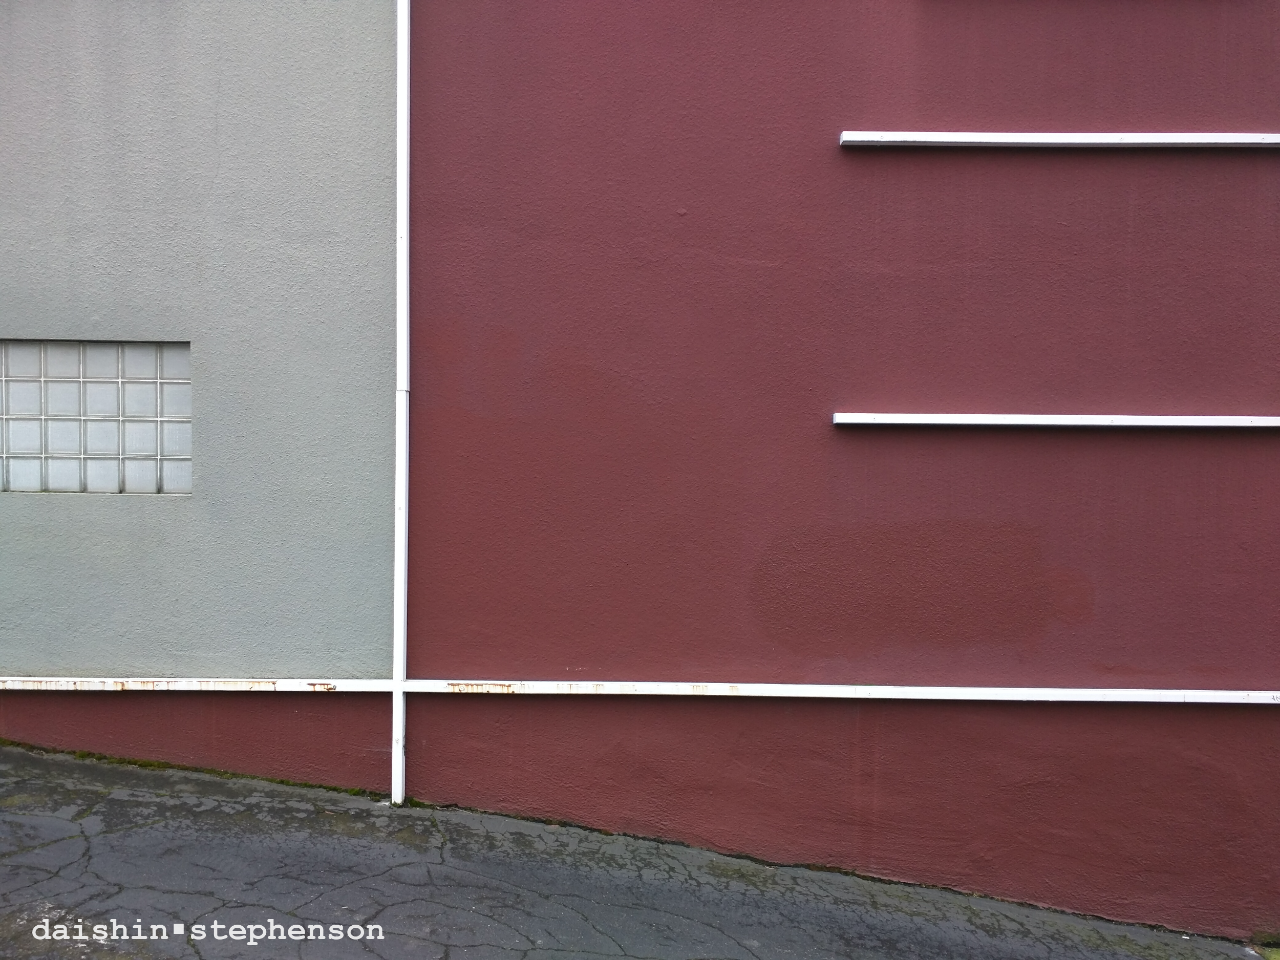 red exterior building wall with orthogonal piping